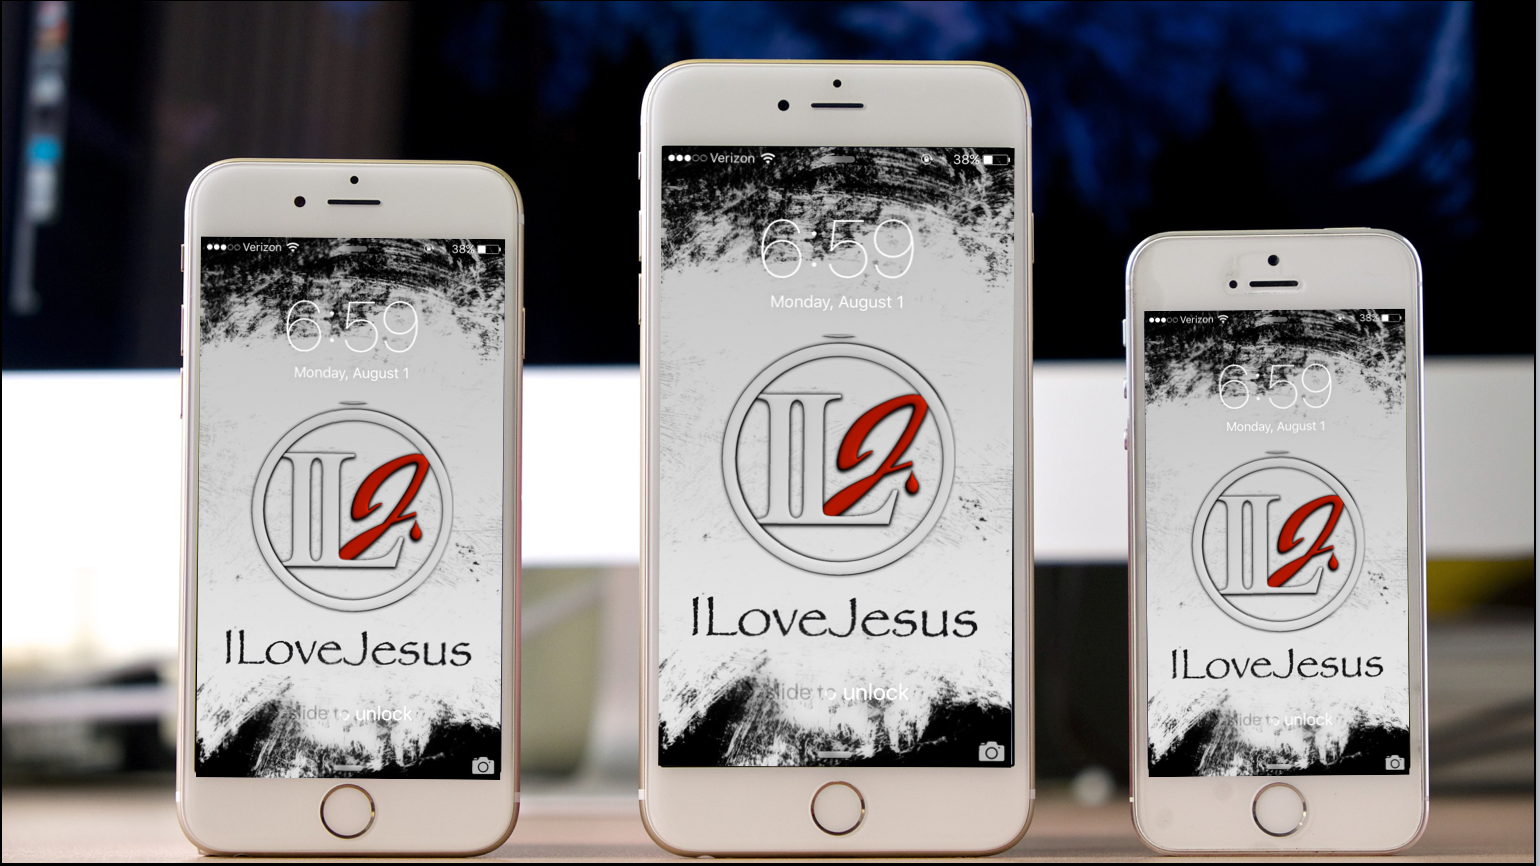 ILJ, I Love Jesus HD Wallpaper  Visit us at www ILJesus com | ILJ, I